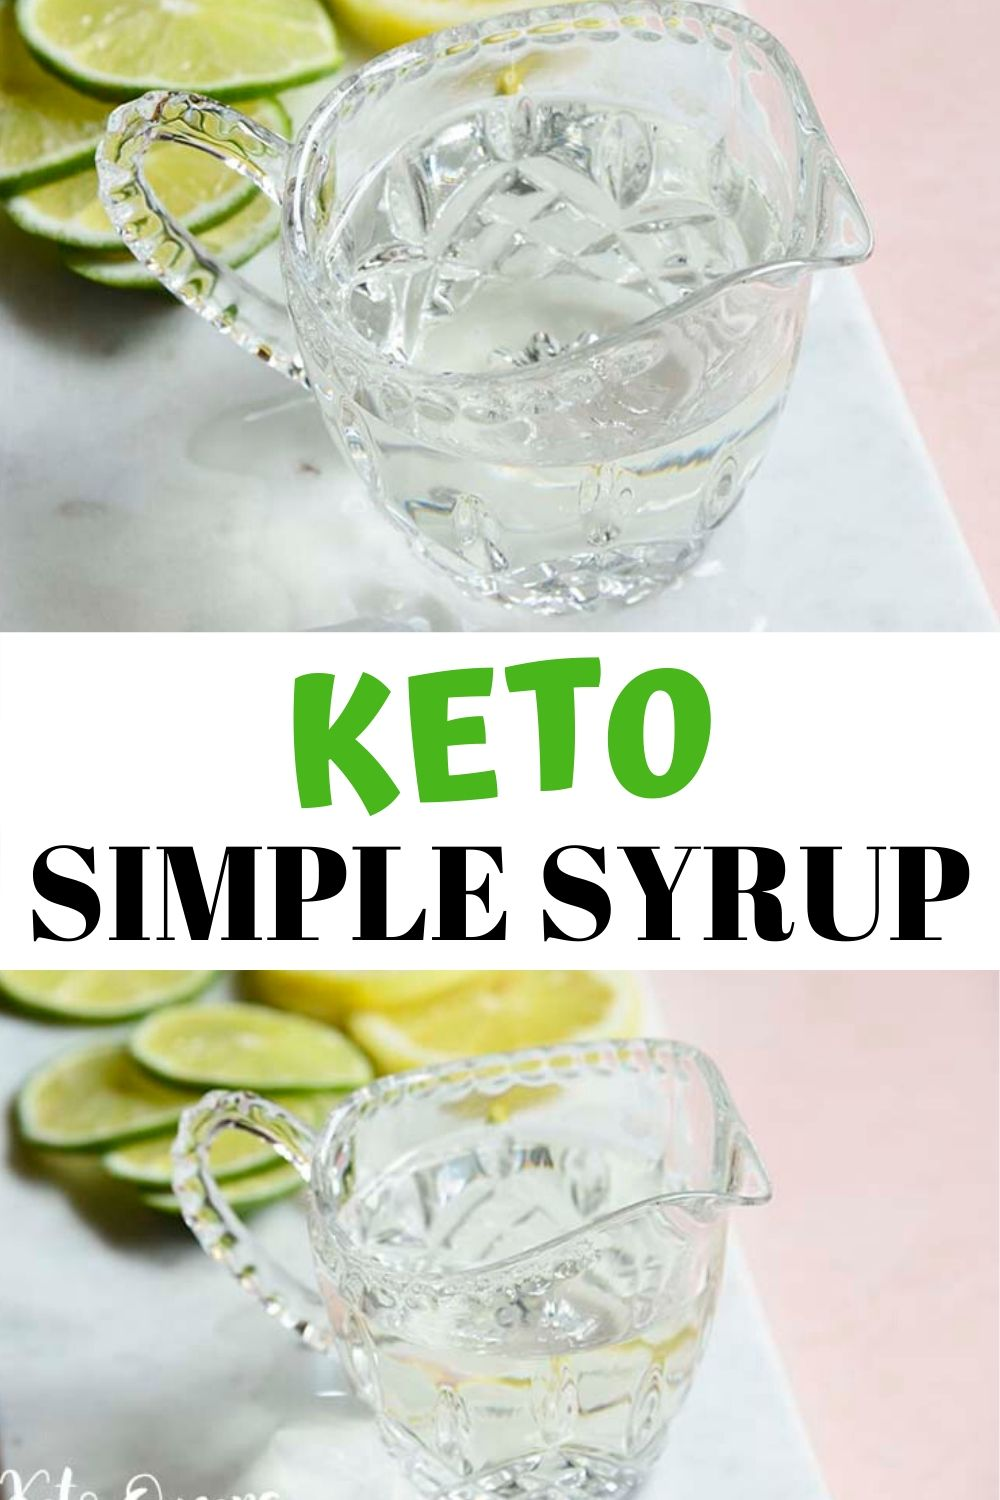 Our keto simple syrup recipe just made low carb cocktails a lot more fun! This sugar free simple syrup tastes great in whiskey sours, old fashions, lemon drops and many more!